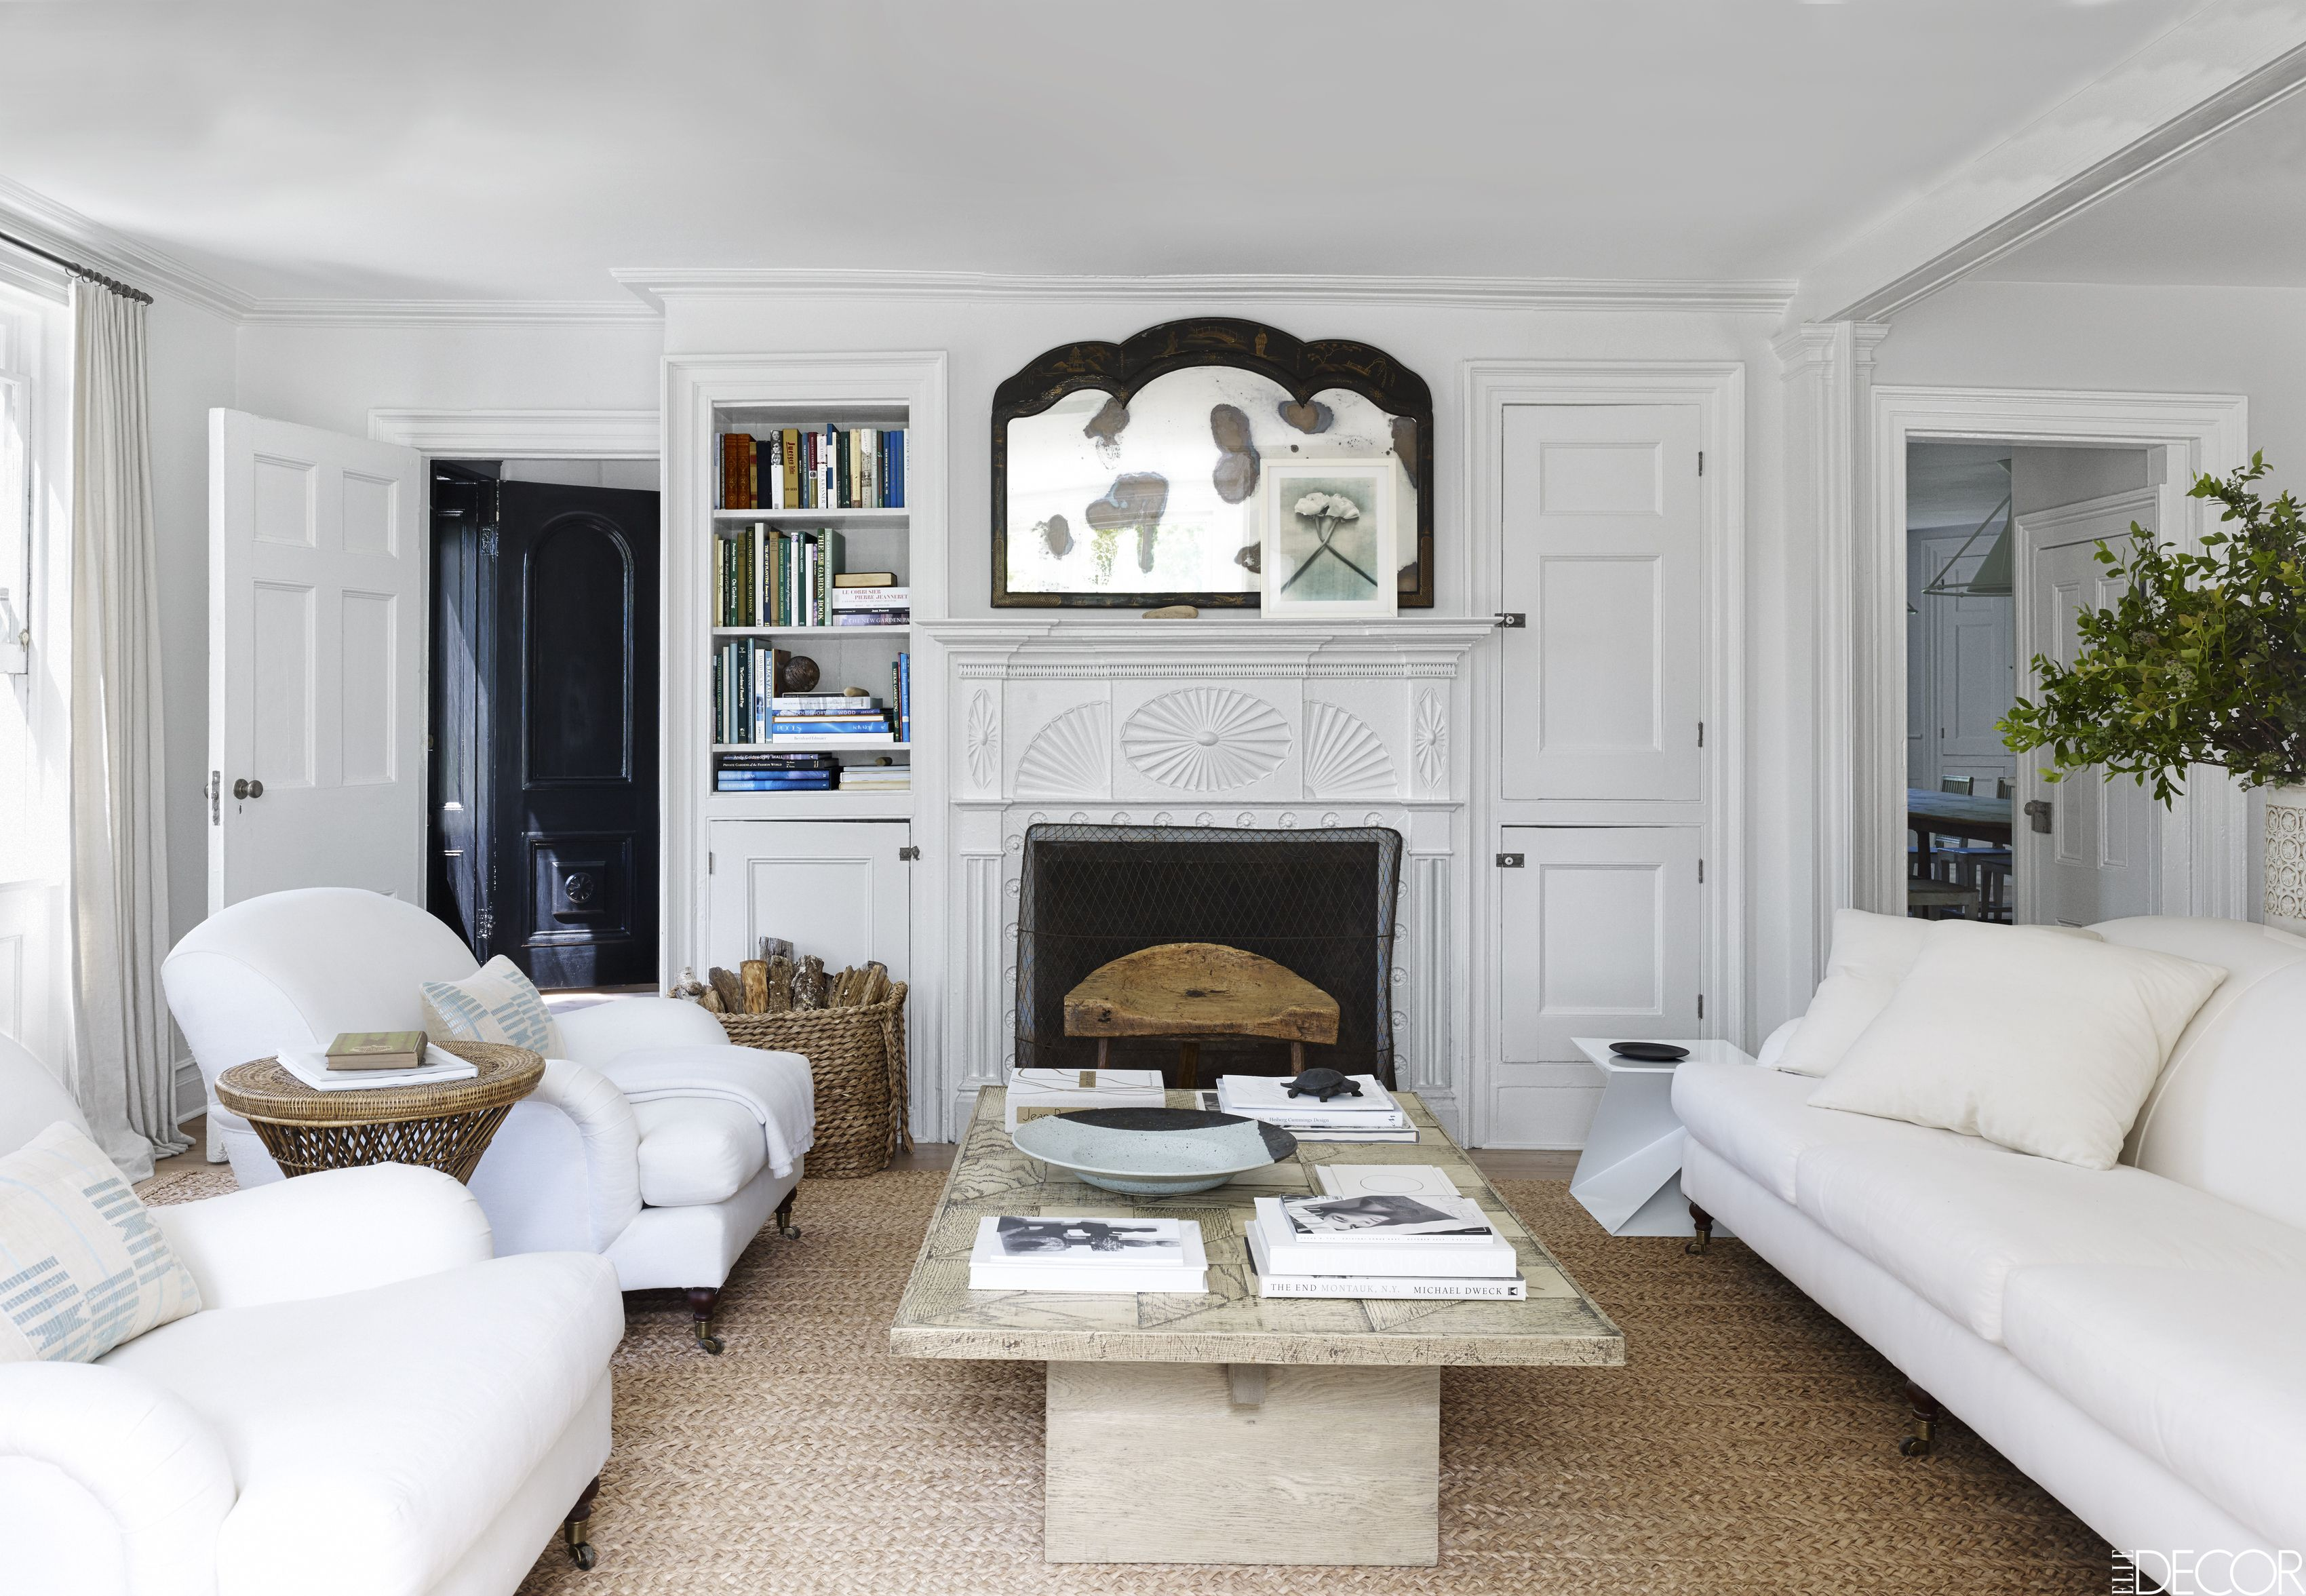 24 Best White Sofa Ideas   Living Room Decorating Ideas For White Sofas image